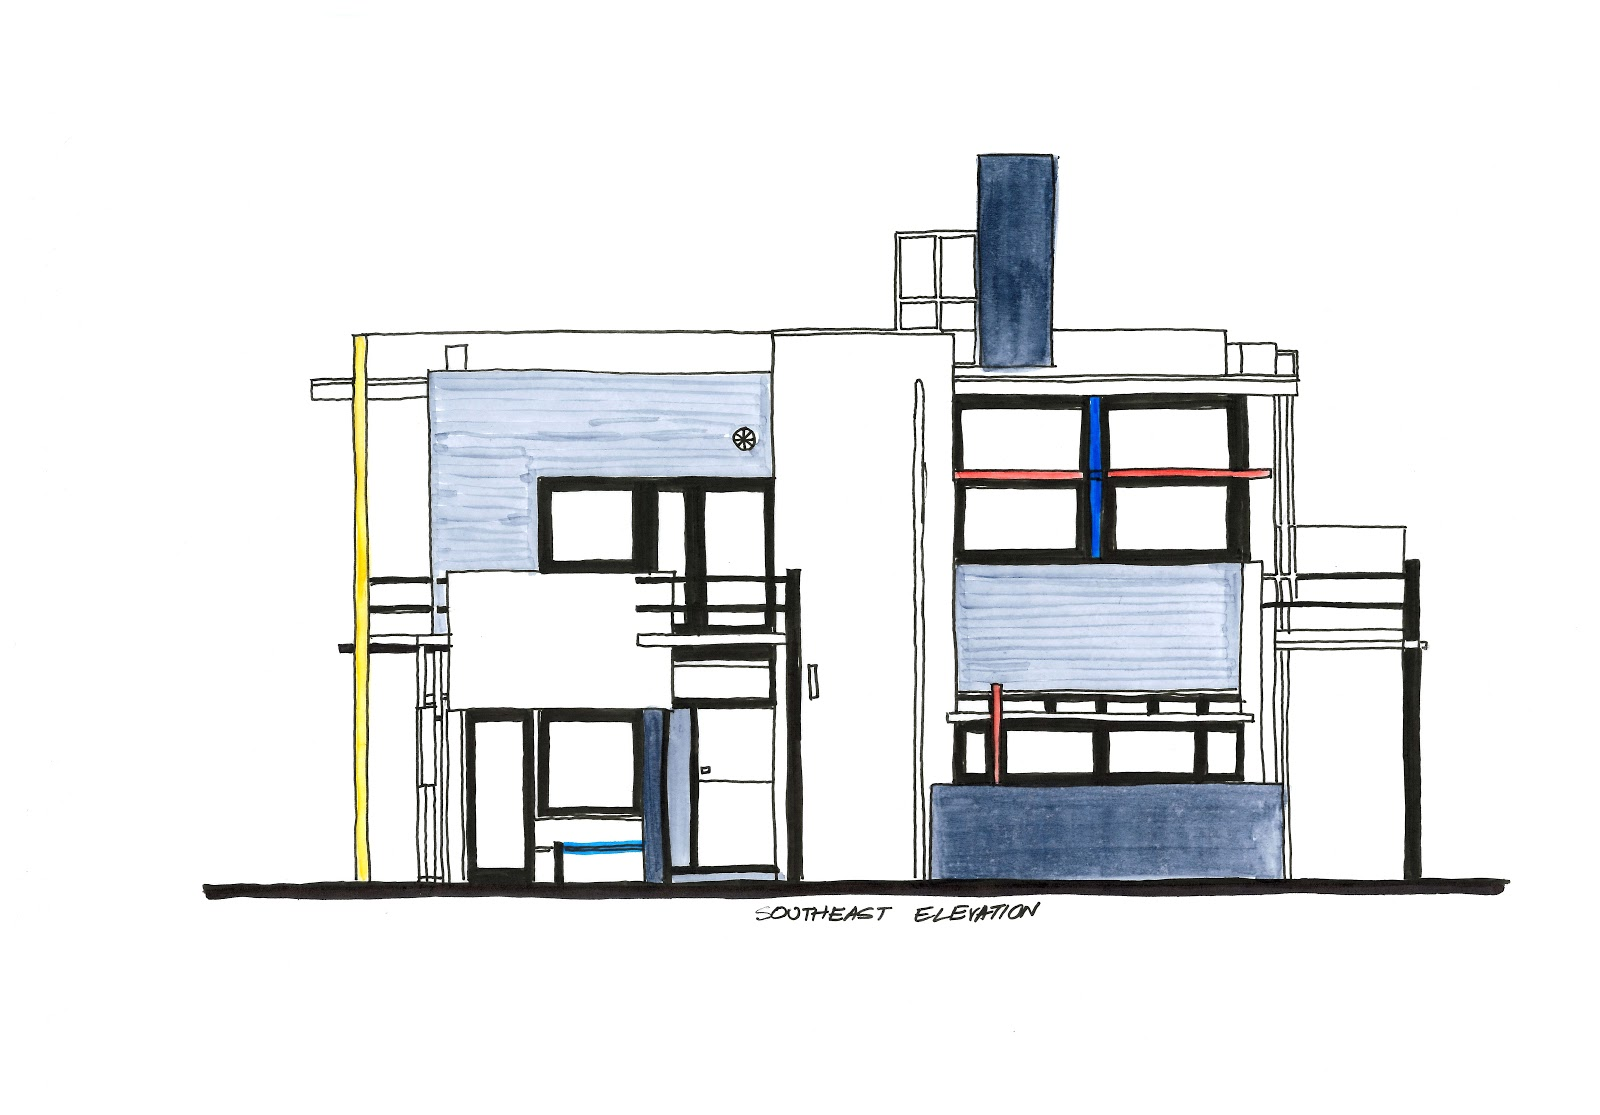 The rietveld schroder house diagrams an in depth analysis of the the best display of the visual independence of the components and of the blurring between the interior and exterior of the rietveld schroder house pooptronica